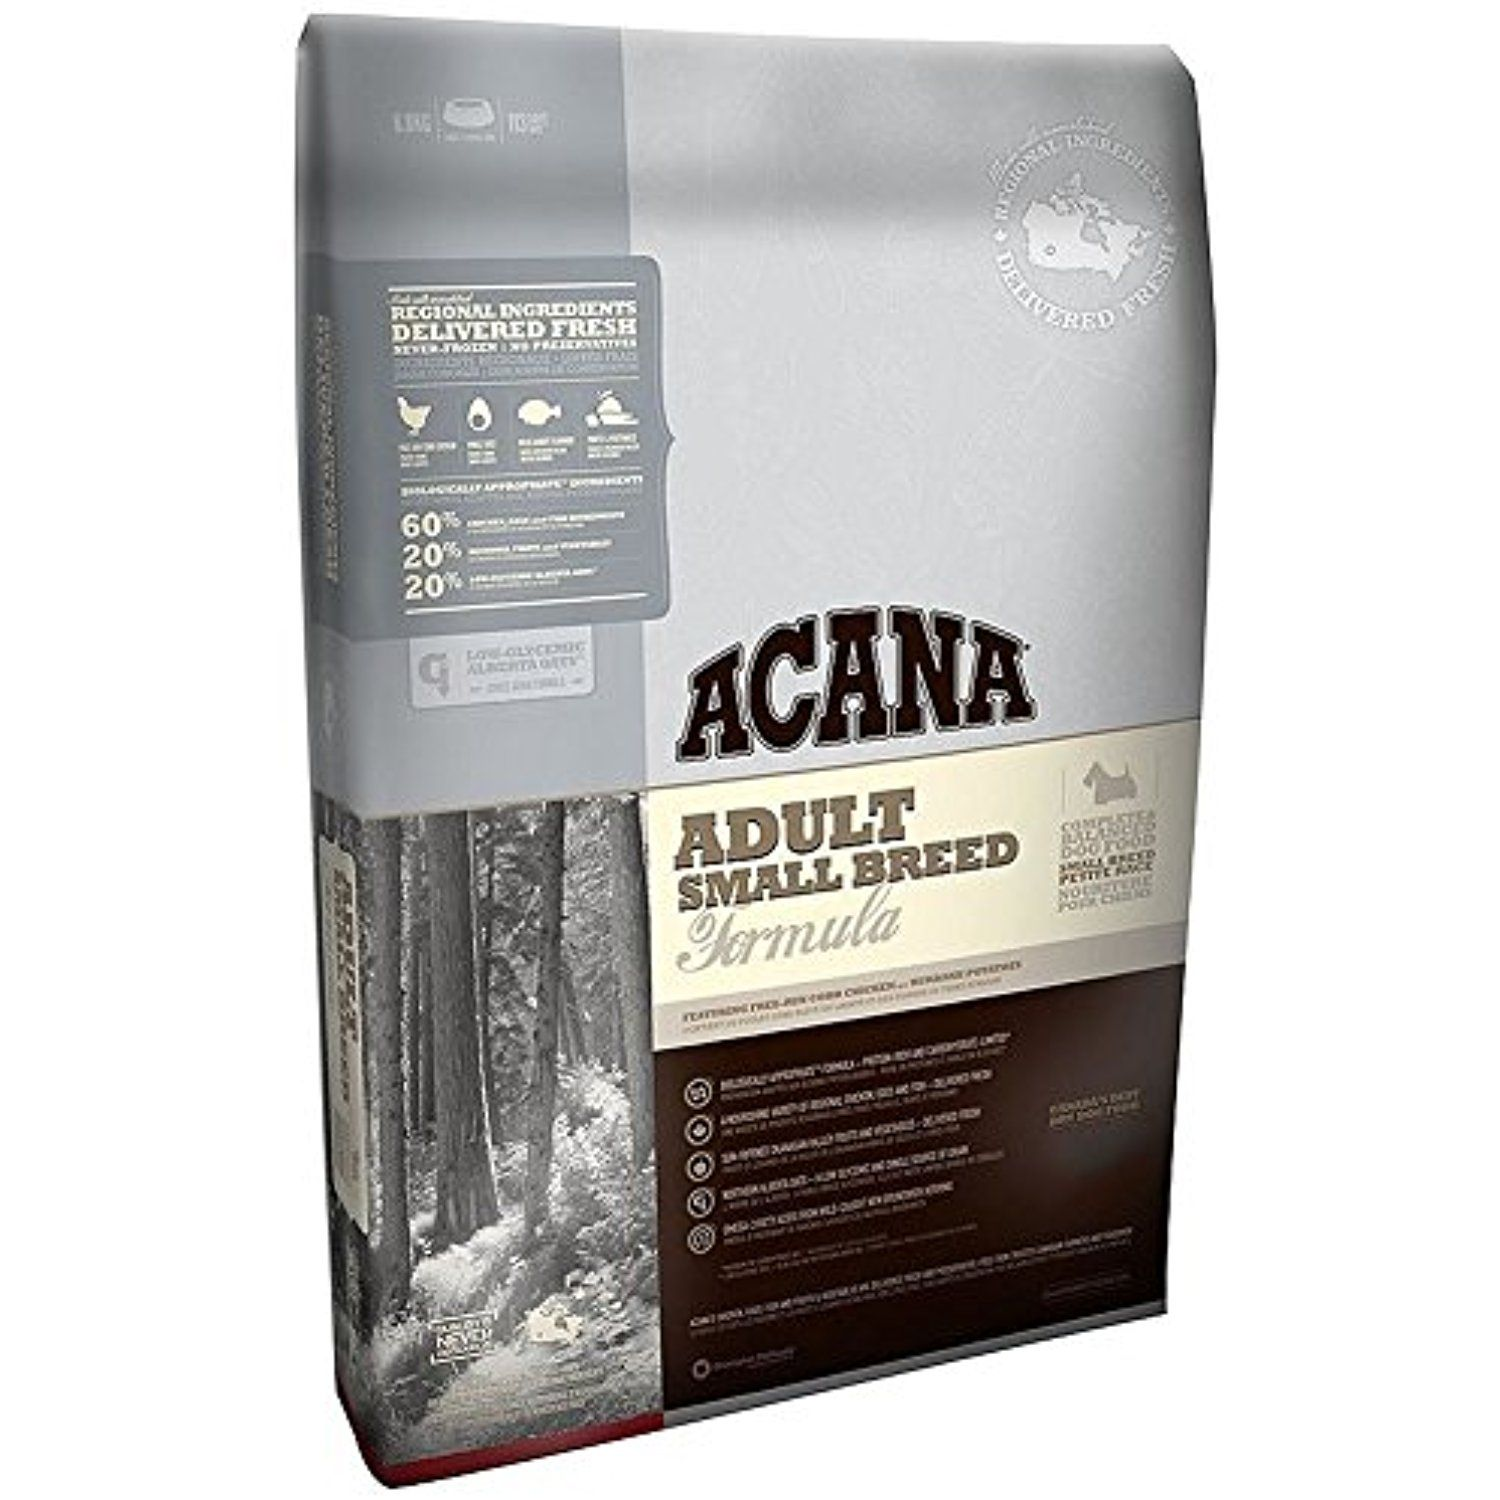 Acana Adult Small Breed Dog Dry Mix 2.27kg You can see